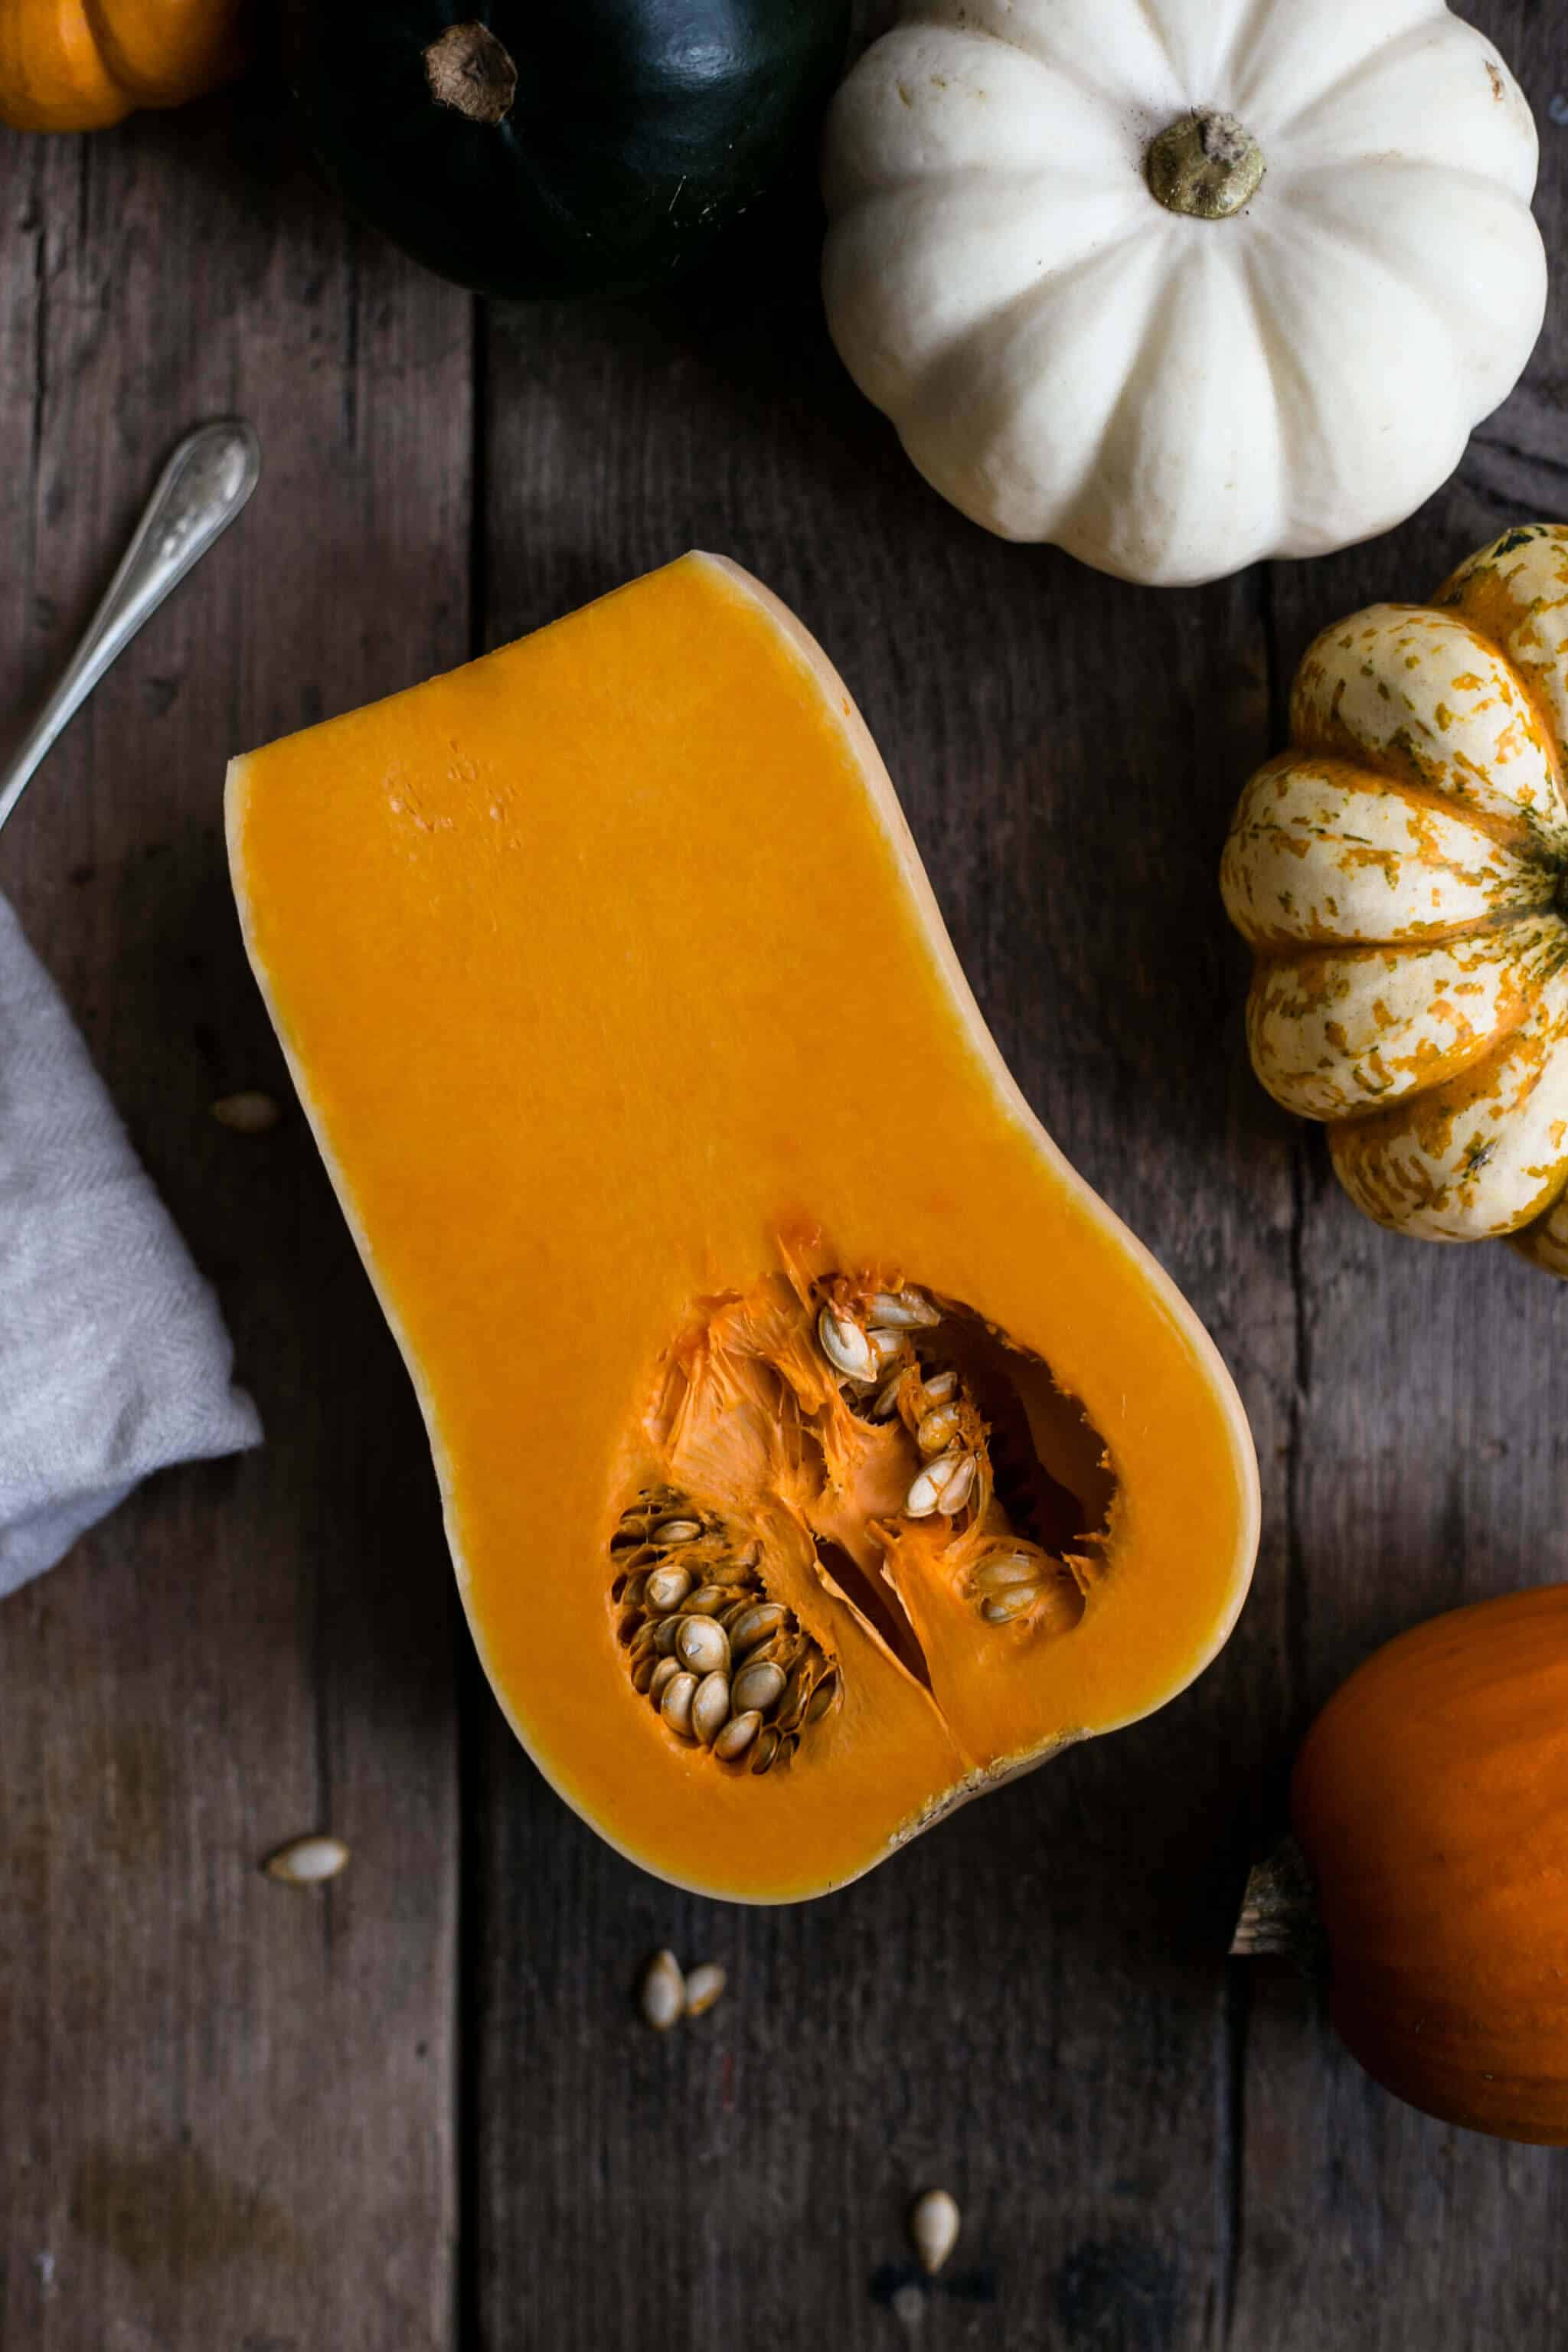 Delicious and easy to make #pumpkin scones with cheese! #vegan option   via @annabanana.co